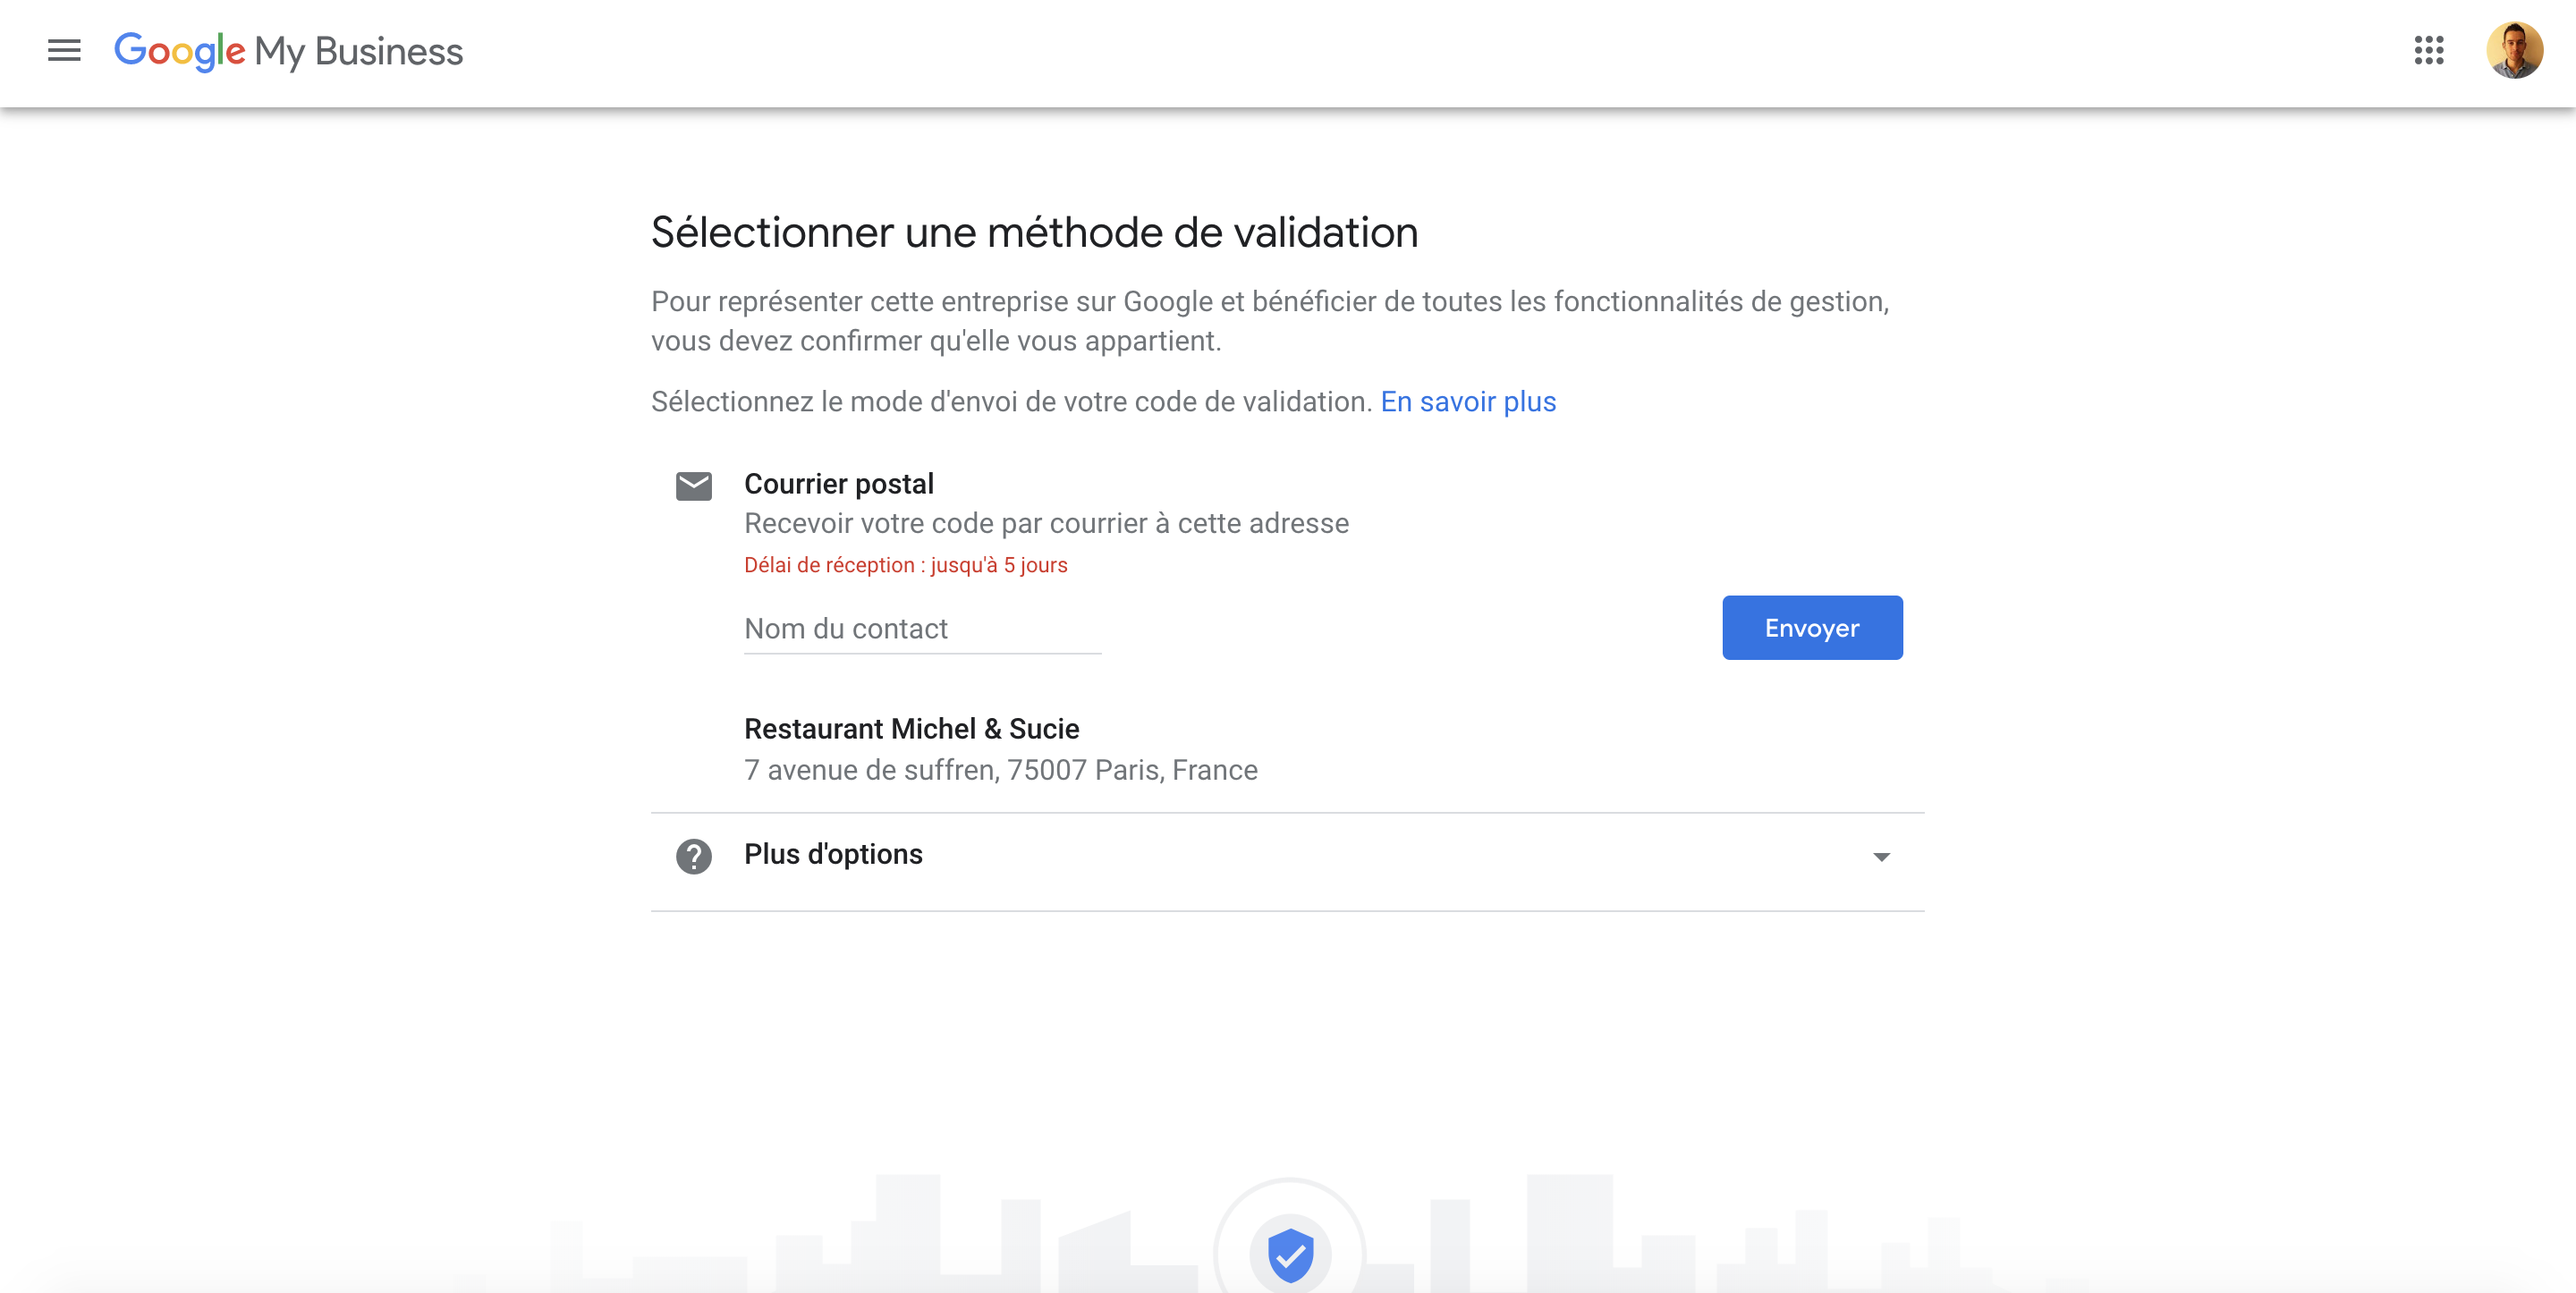 inscription-fiche-google-my-business-methode-validation